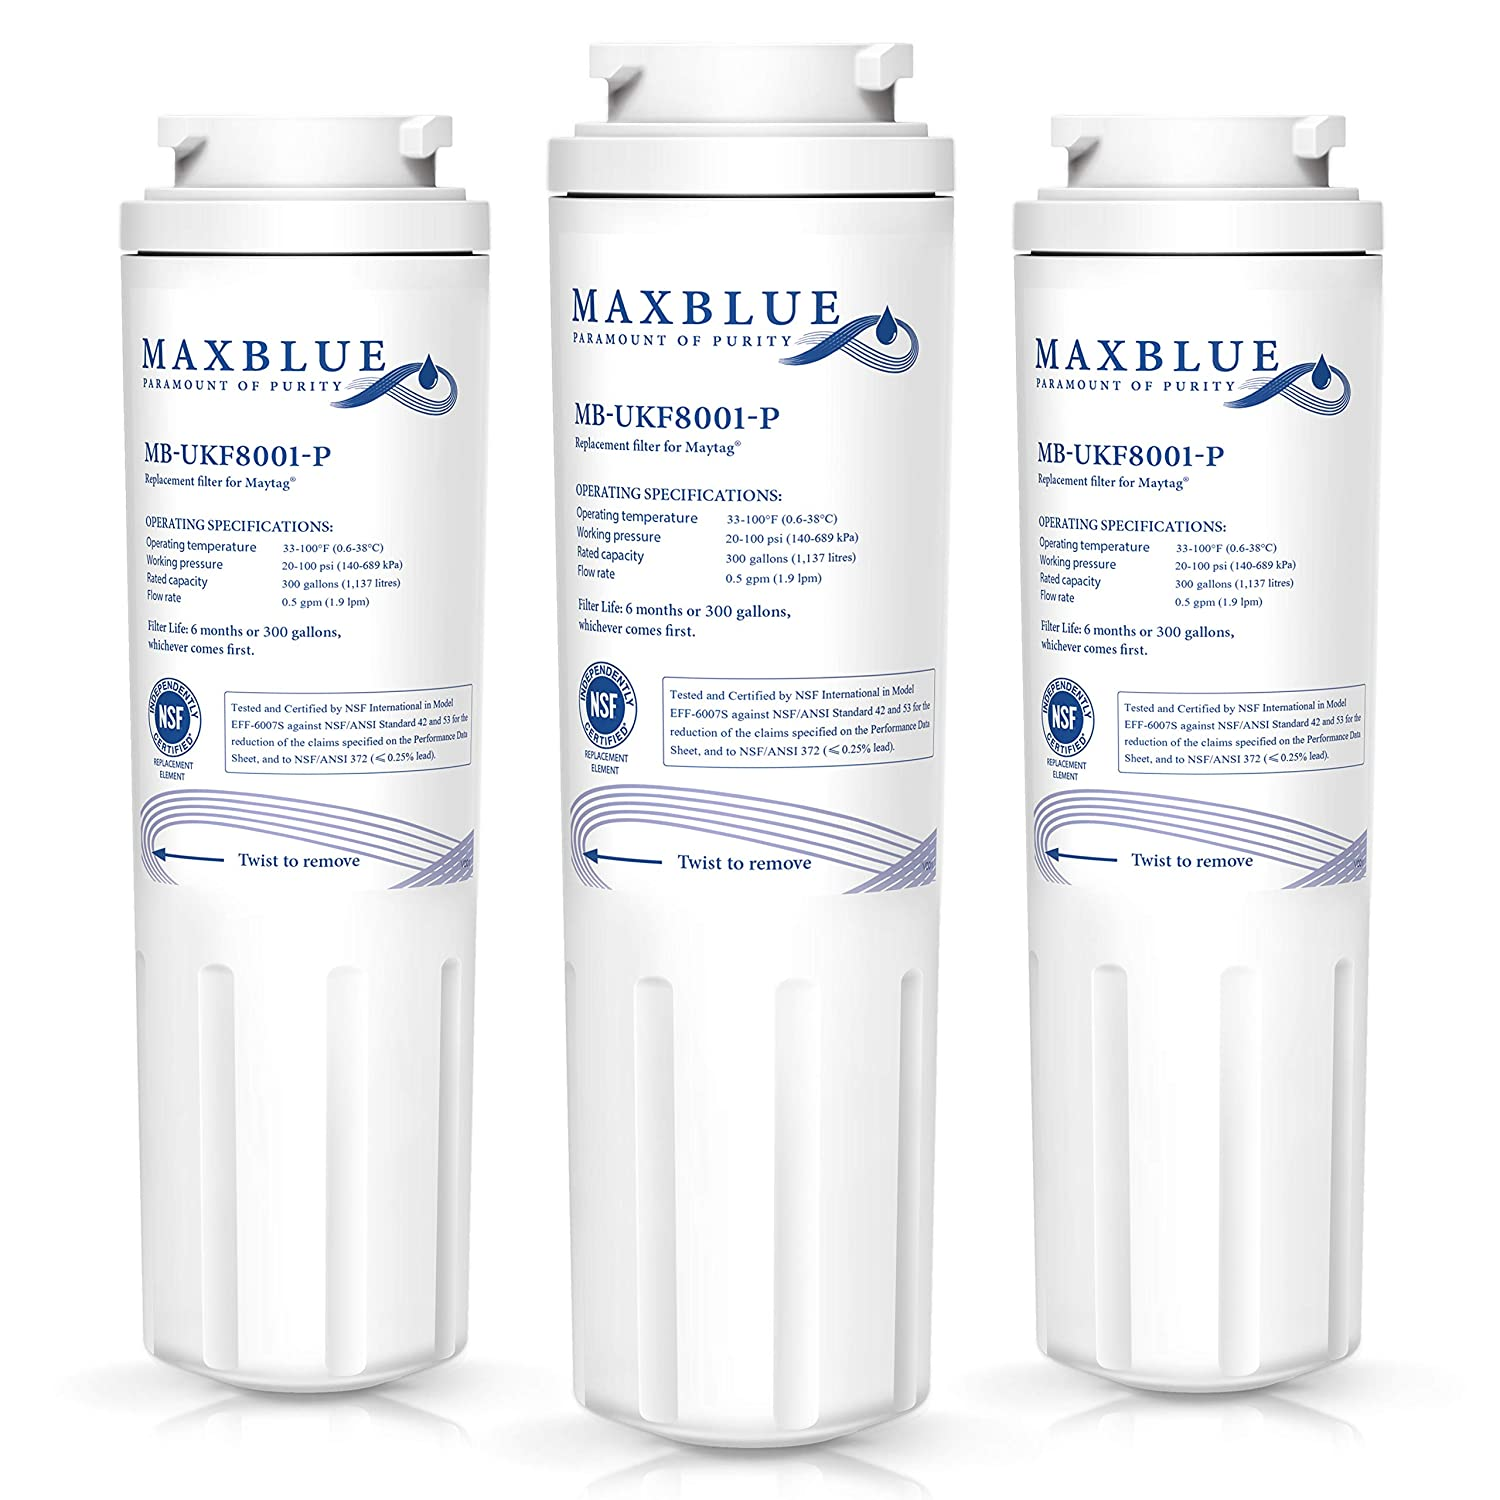 Maxblue NSF 53&42 Certified UKF8001 Refrigerator Water Filter, Replacement for Maytag PUR, Jenn-Air, Filter 4, 4396395, UKF8001AXX, UKF8001AXX-200, 469006, Puriclean II, 8171032, 469992, Pack of 3